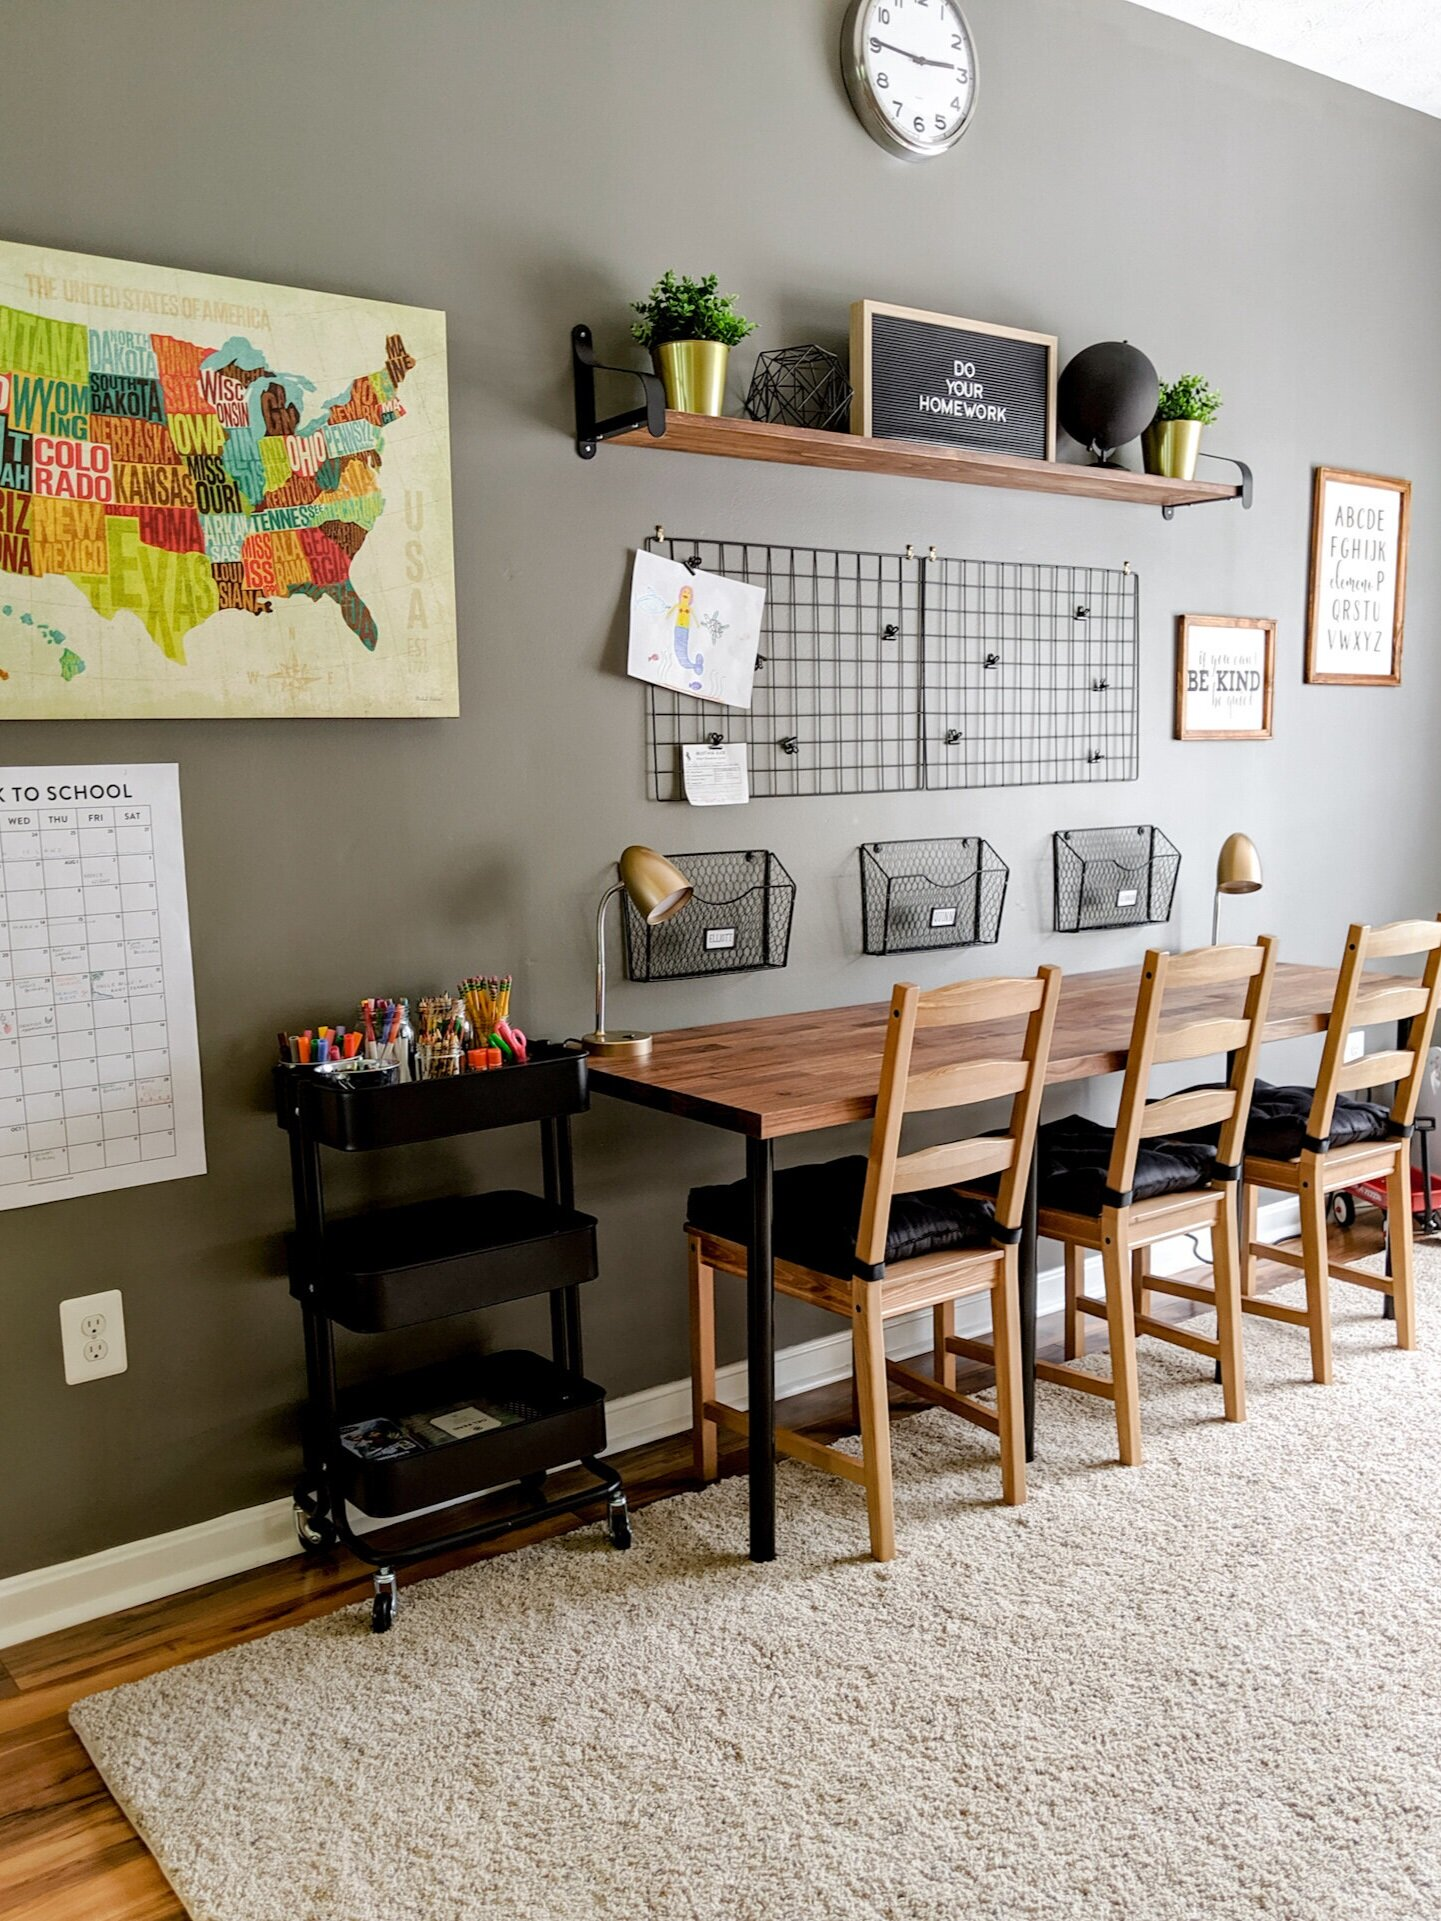 Our new homework station is just the space our kids needed to get their homework done.